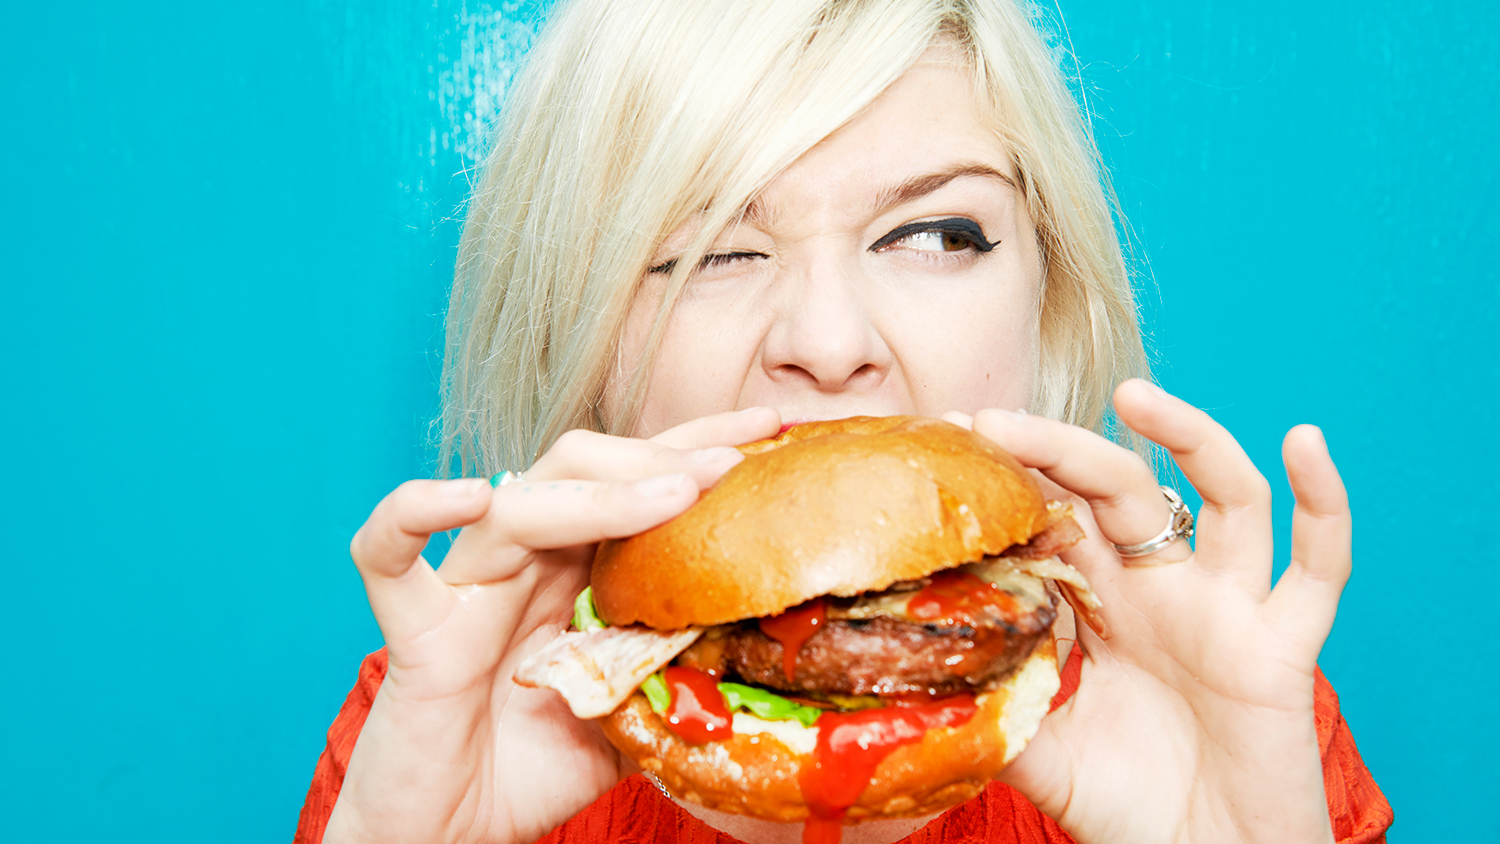 how you hold what you eat burger